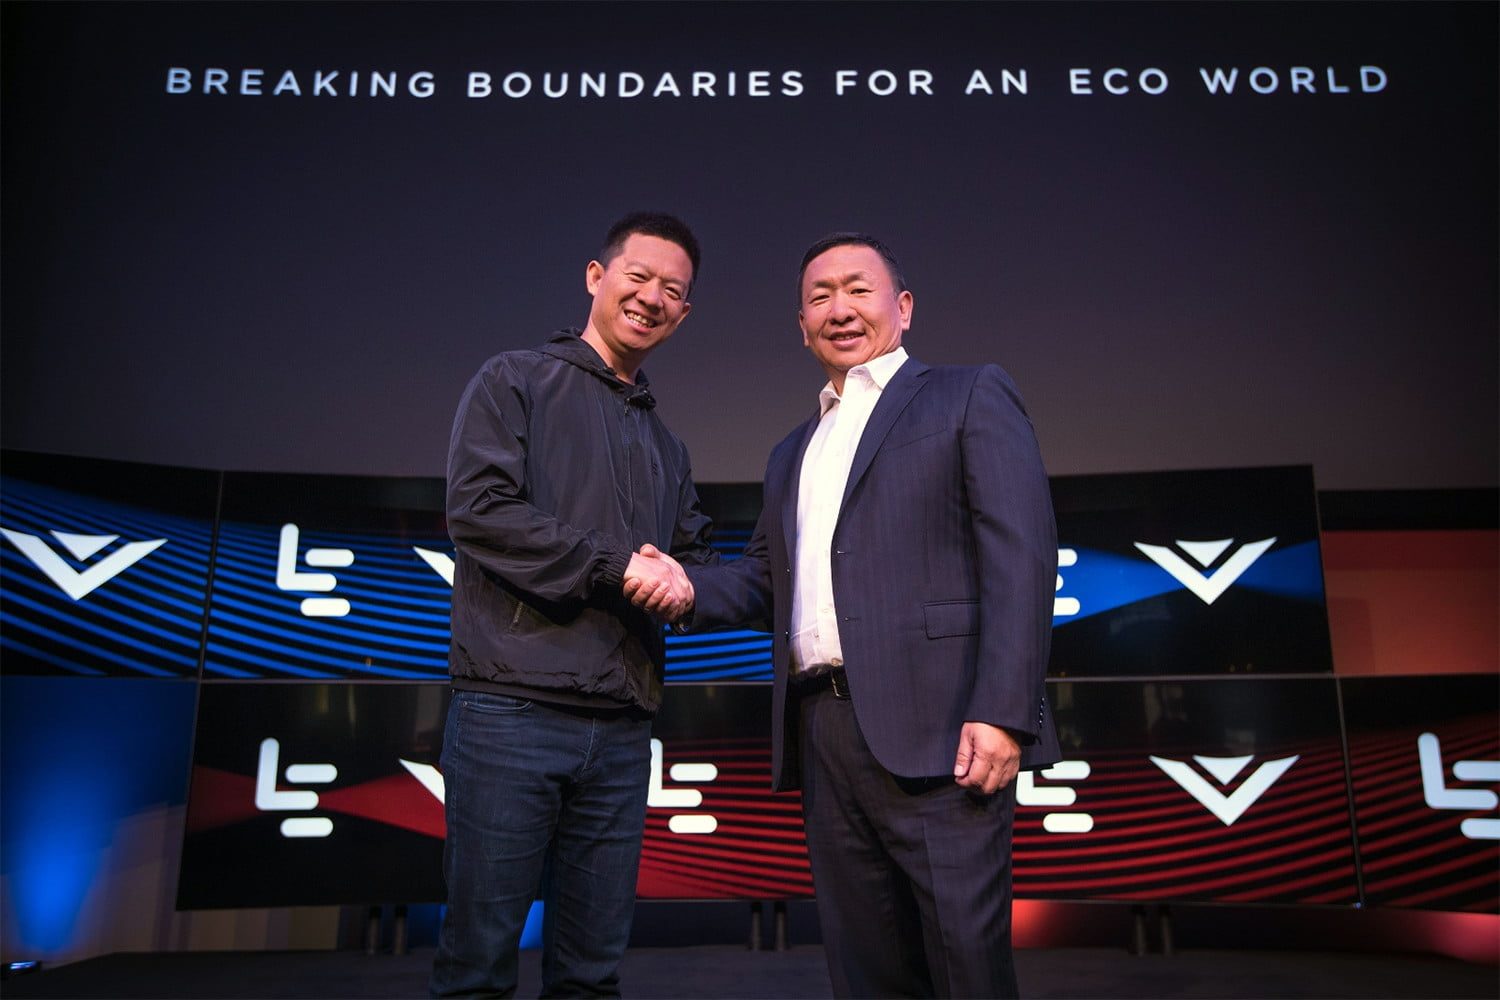 Faraday Future to reveal its first production model at CES 2017